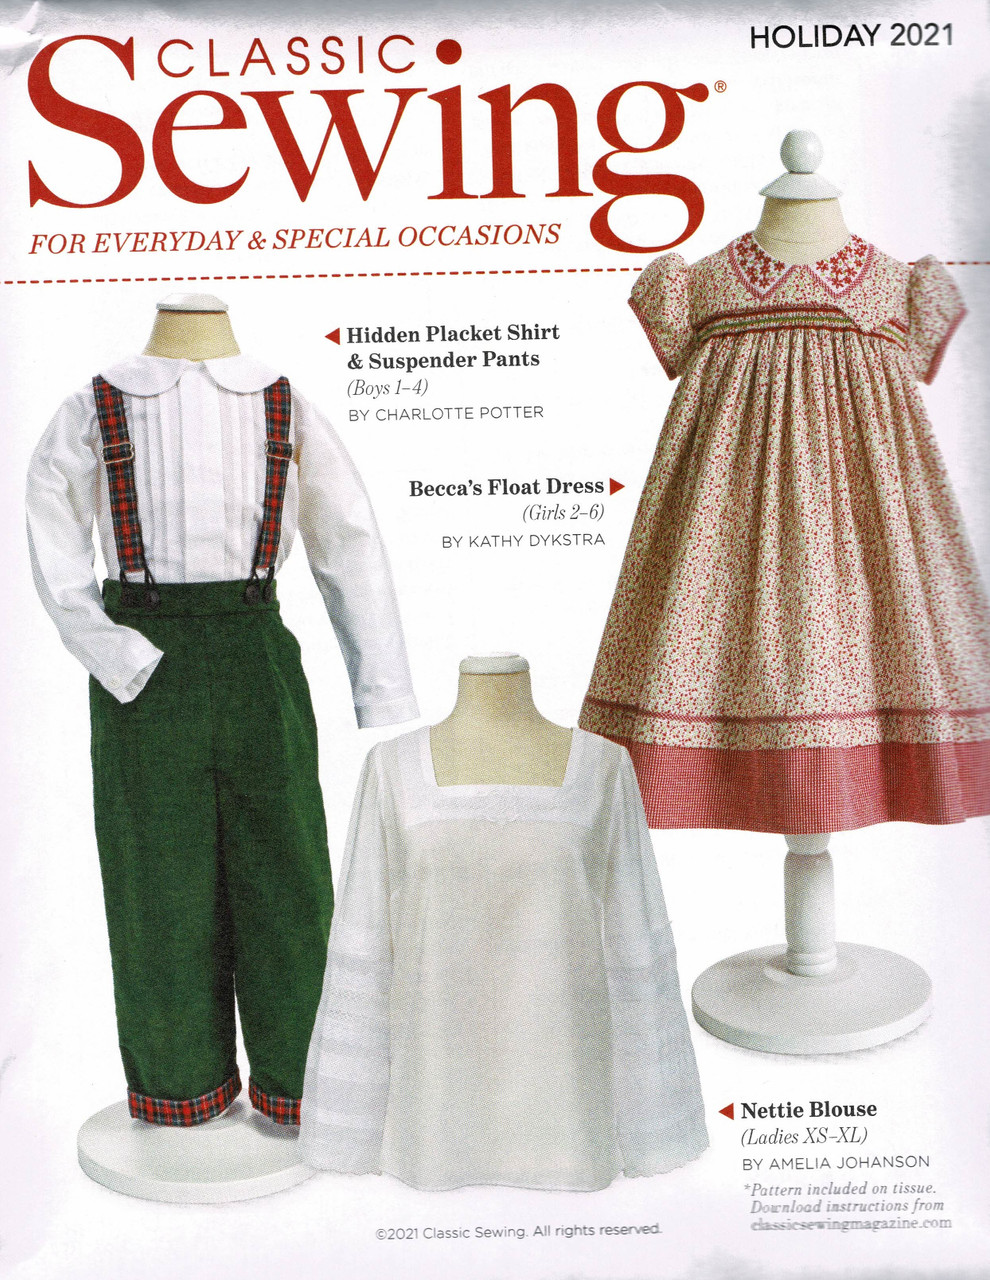 Pattern that comes with the Classic sewing magazine Holiday 2021